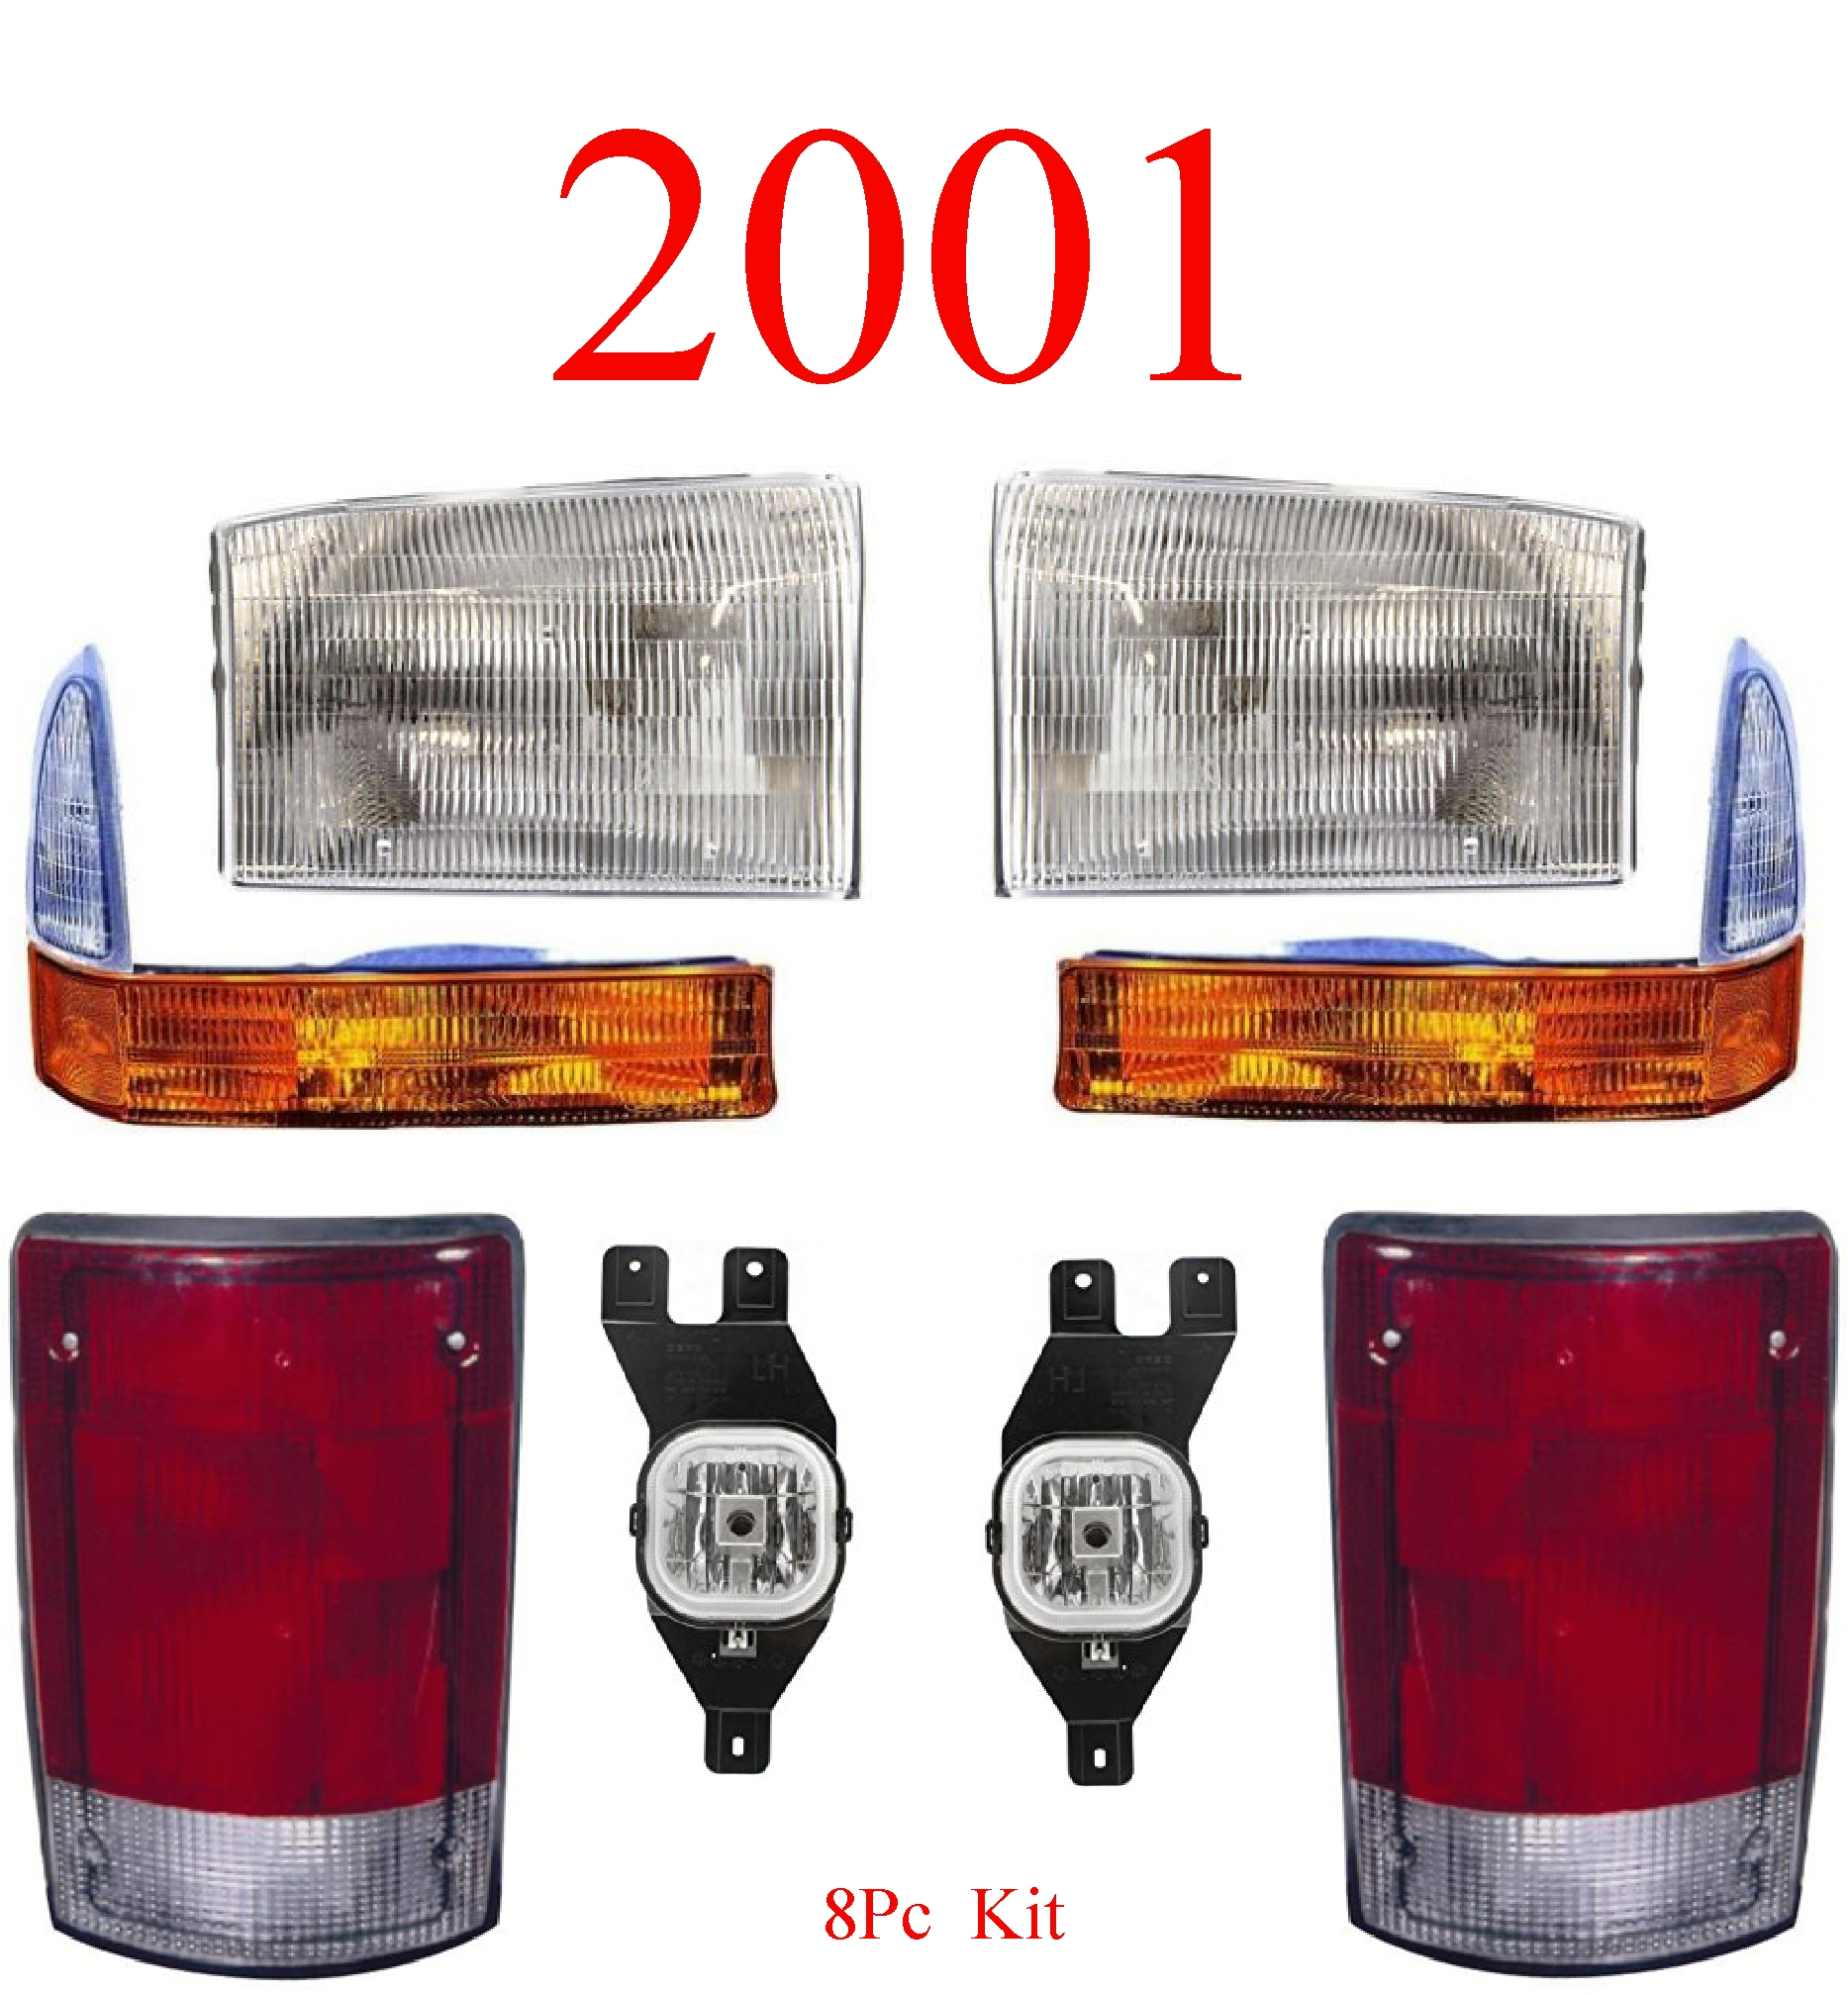 01 Ford Excursion 8Pc Head, Park, Fog & Tail Light Kit